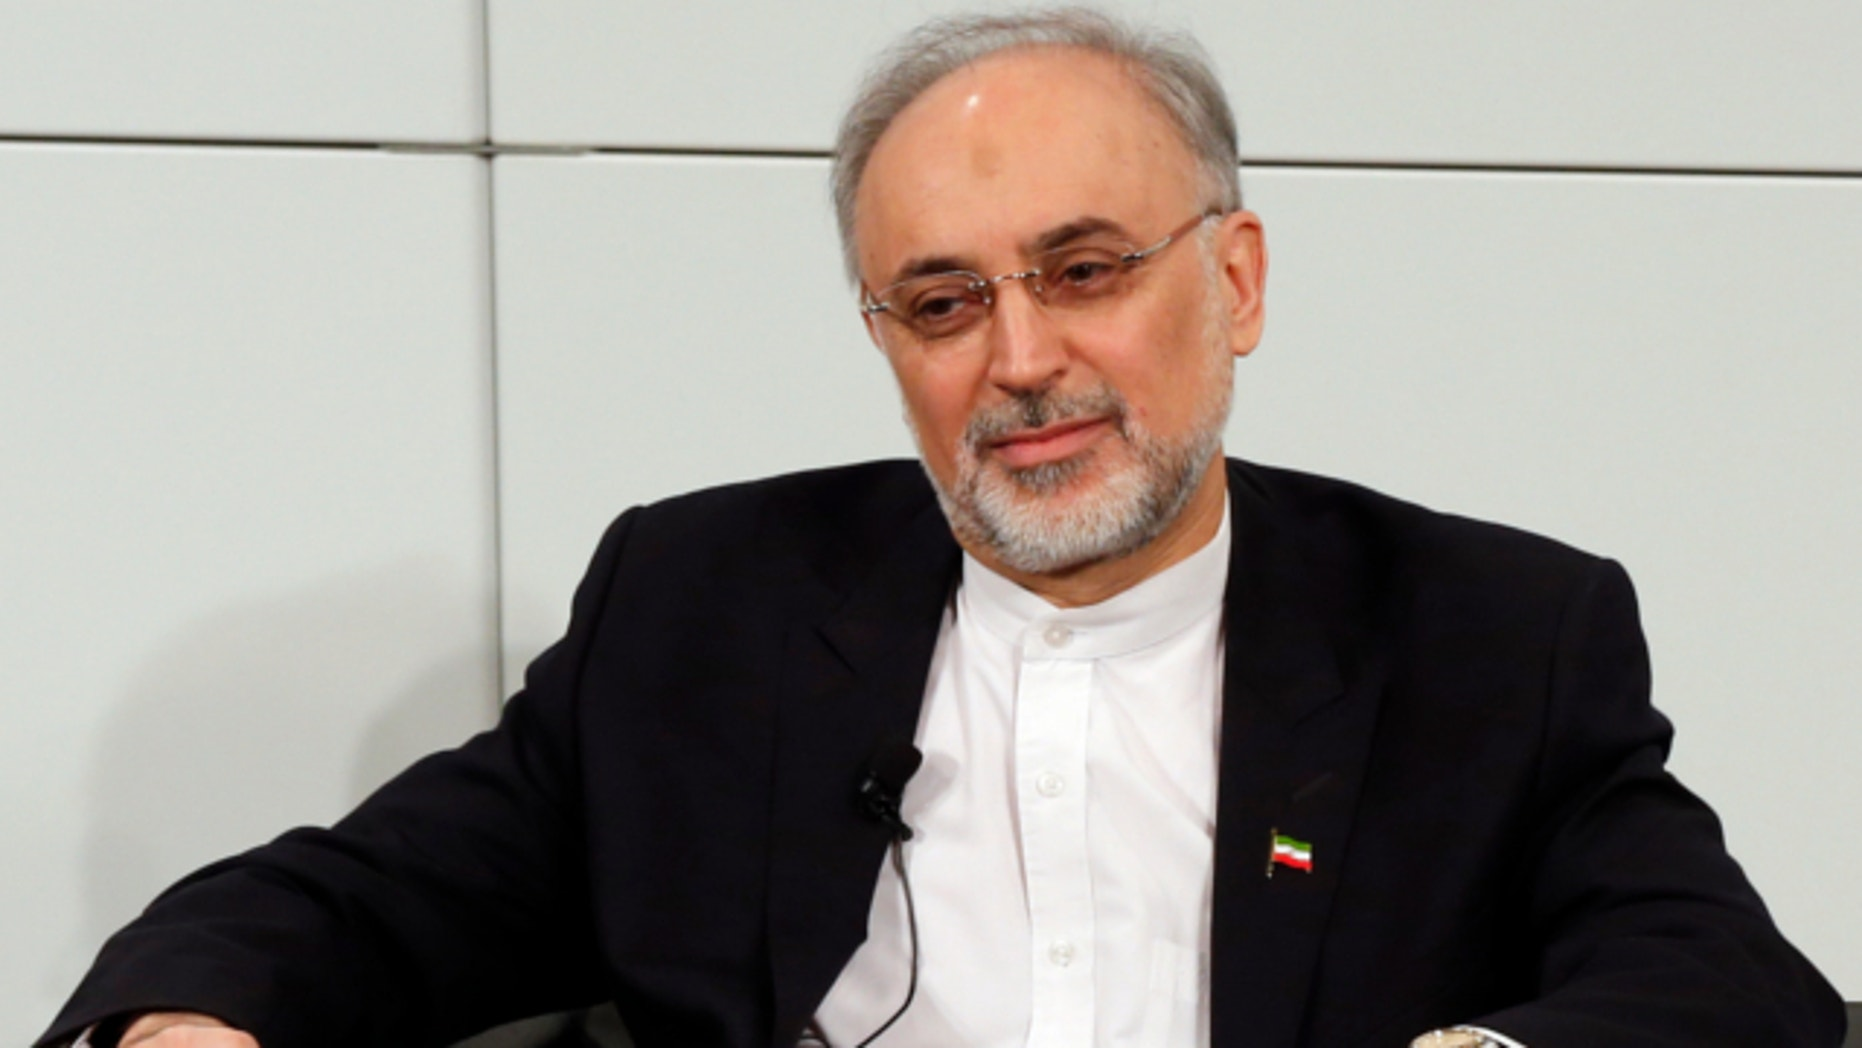 Feb. 3, 2013: Iranian Foreign Minister Ali Akbar Salehi attends a meeting at the Security Conference in Munich, southern Germany.